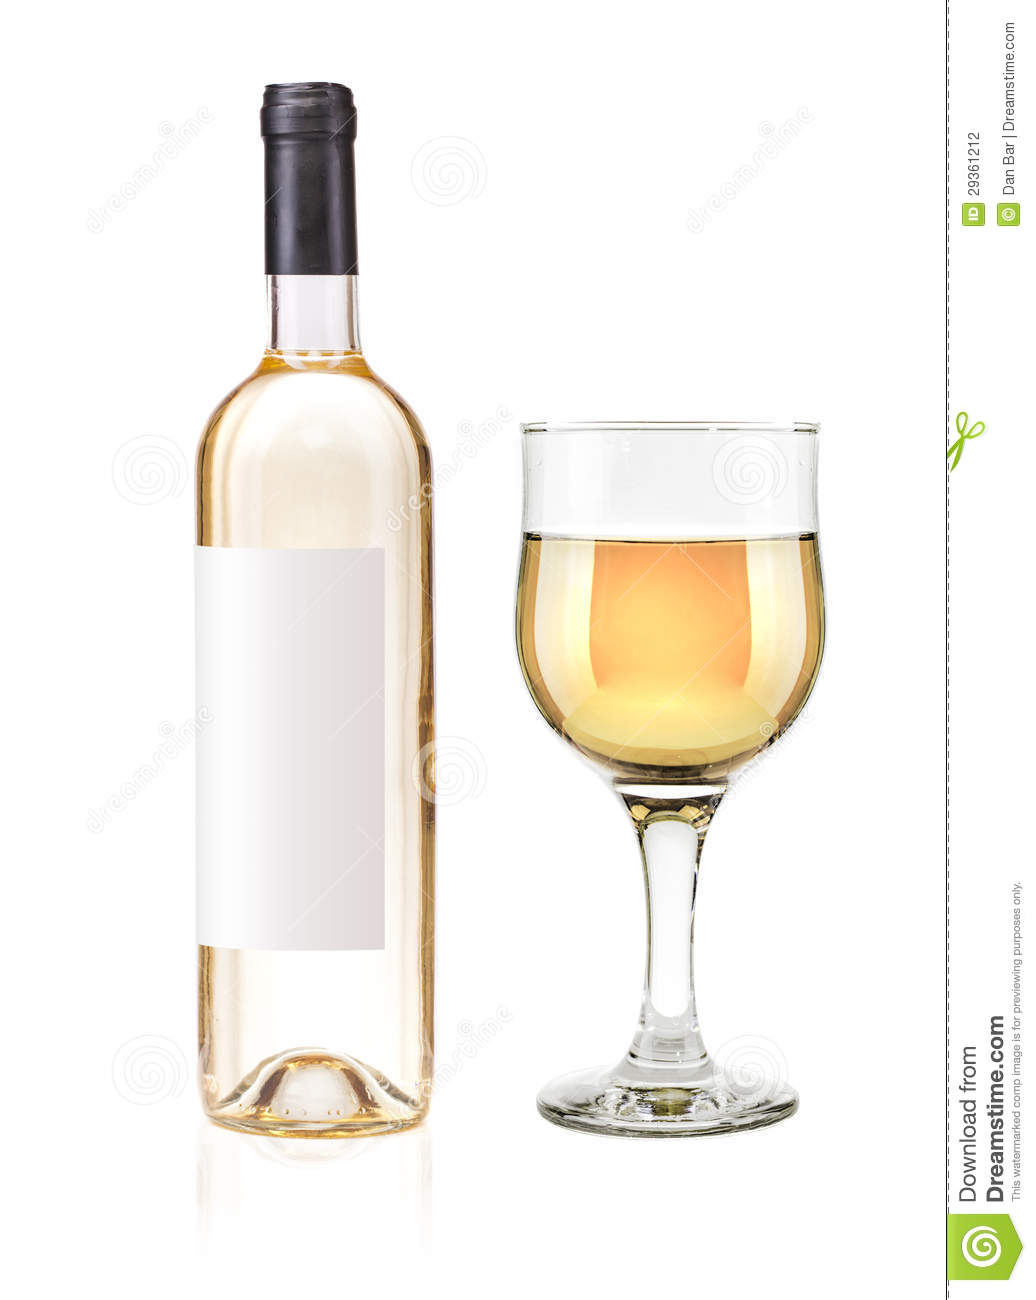 White wine bottle and glass stock photography image for Wine bottle glass